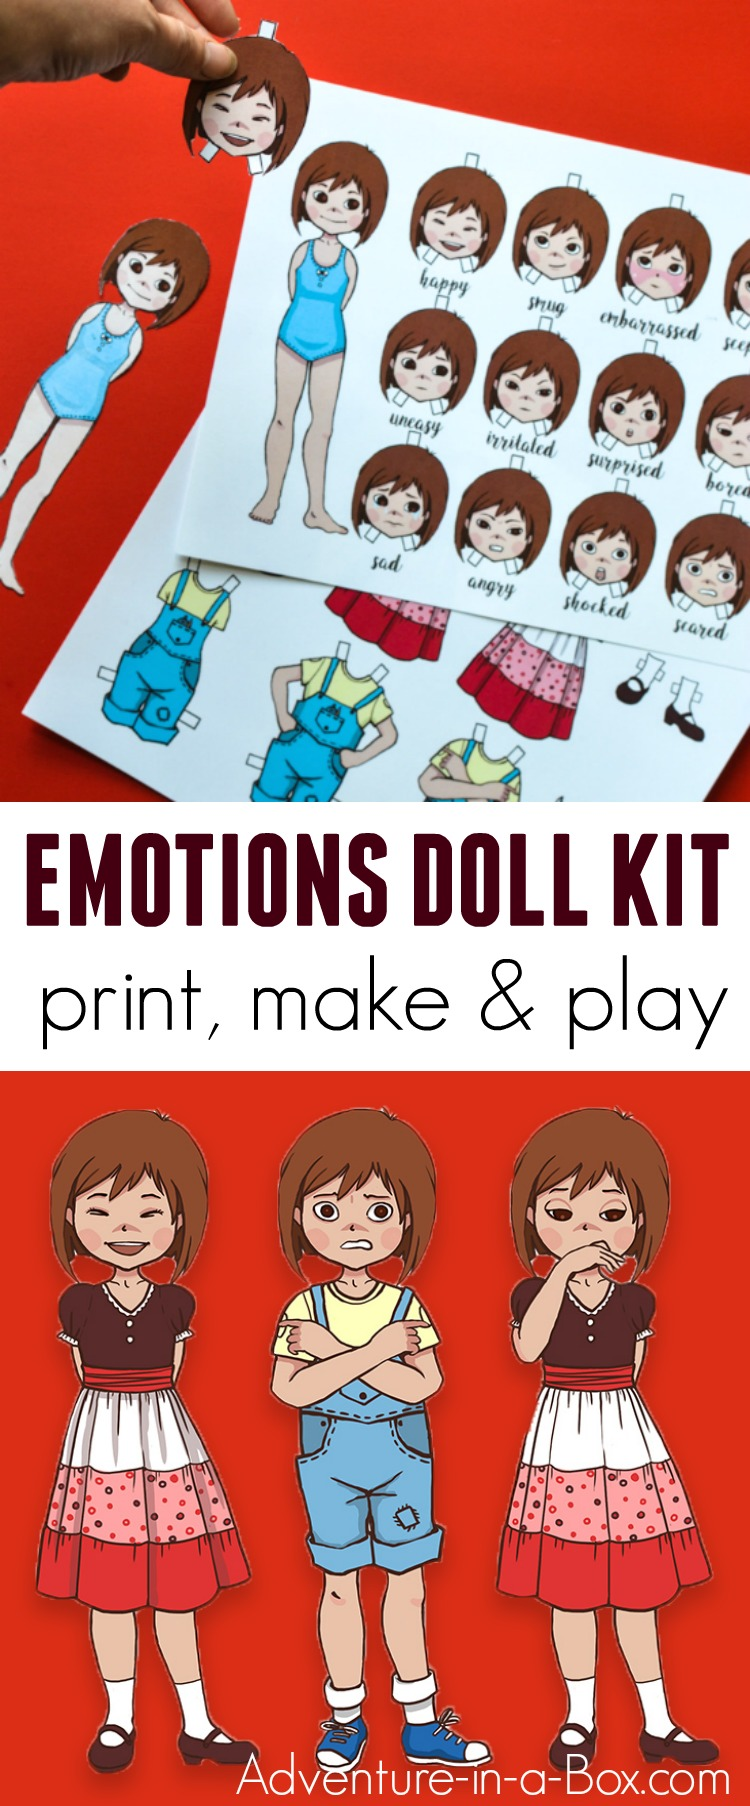 Instead of dresses, the printable dress-up paper doll changes poses and expressions to convey a wide array of emotions and teach children to successfully read other people's body language. In addition to that, it's a fun storytelling prompt and a simple paper craft to make! #homeschool #emotions #papercraft #paperdoll